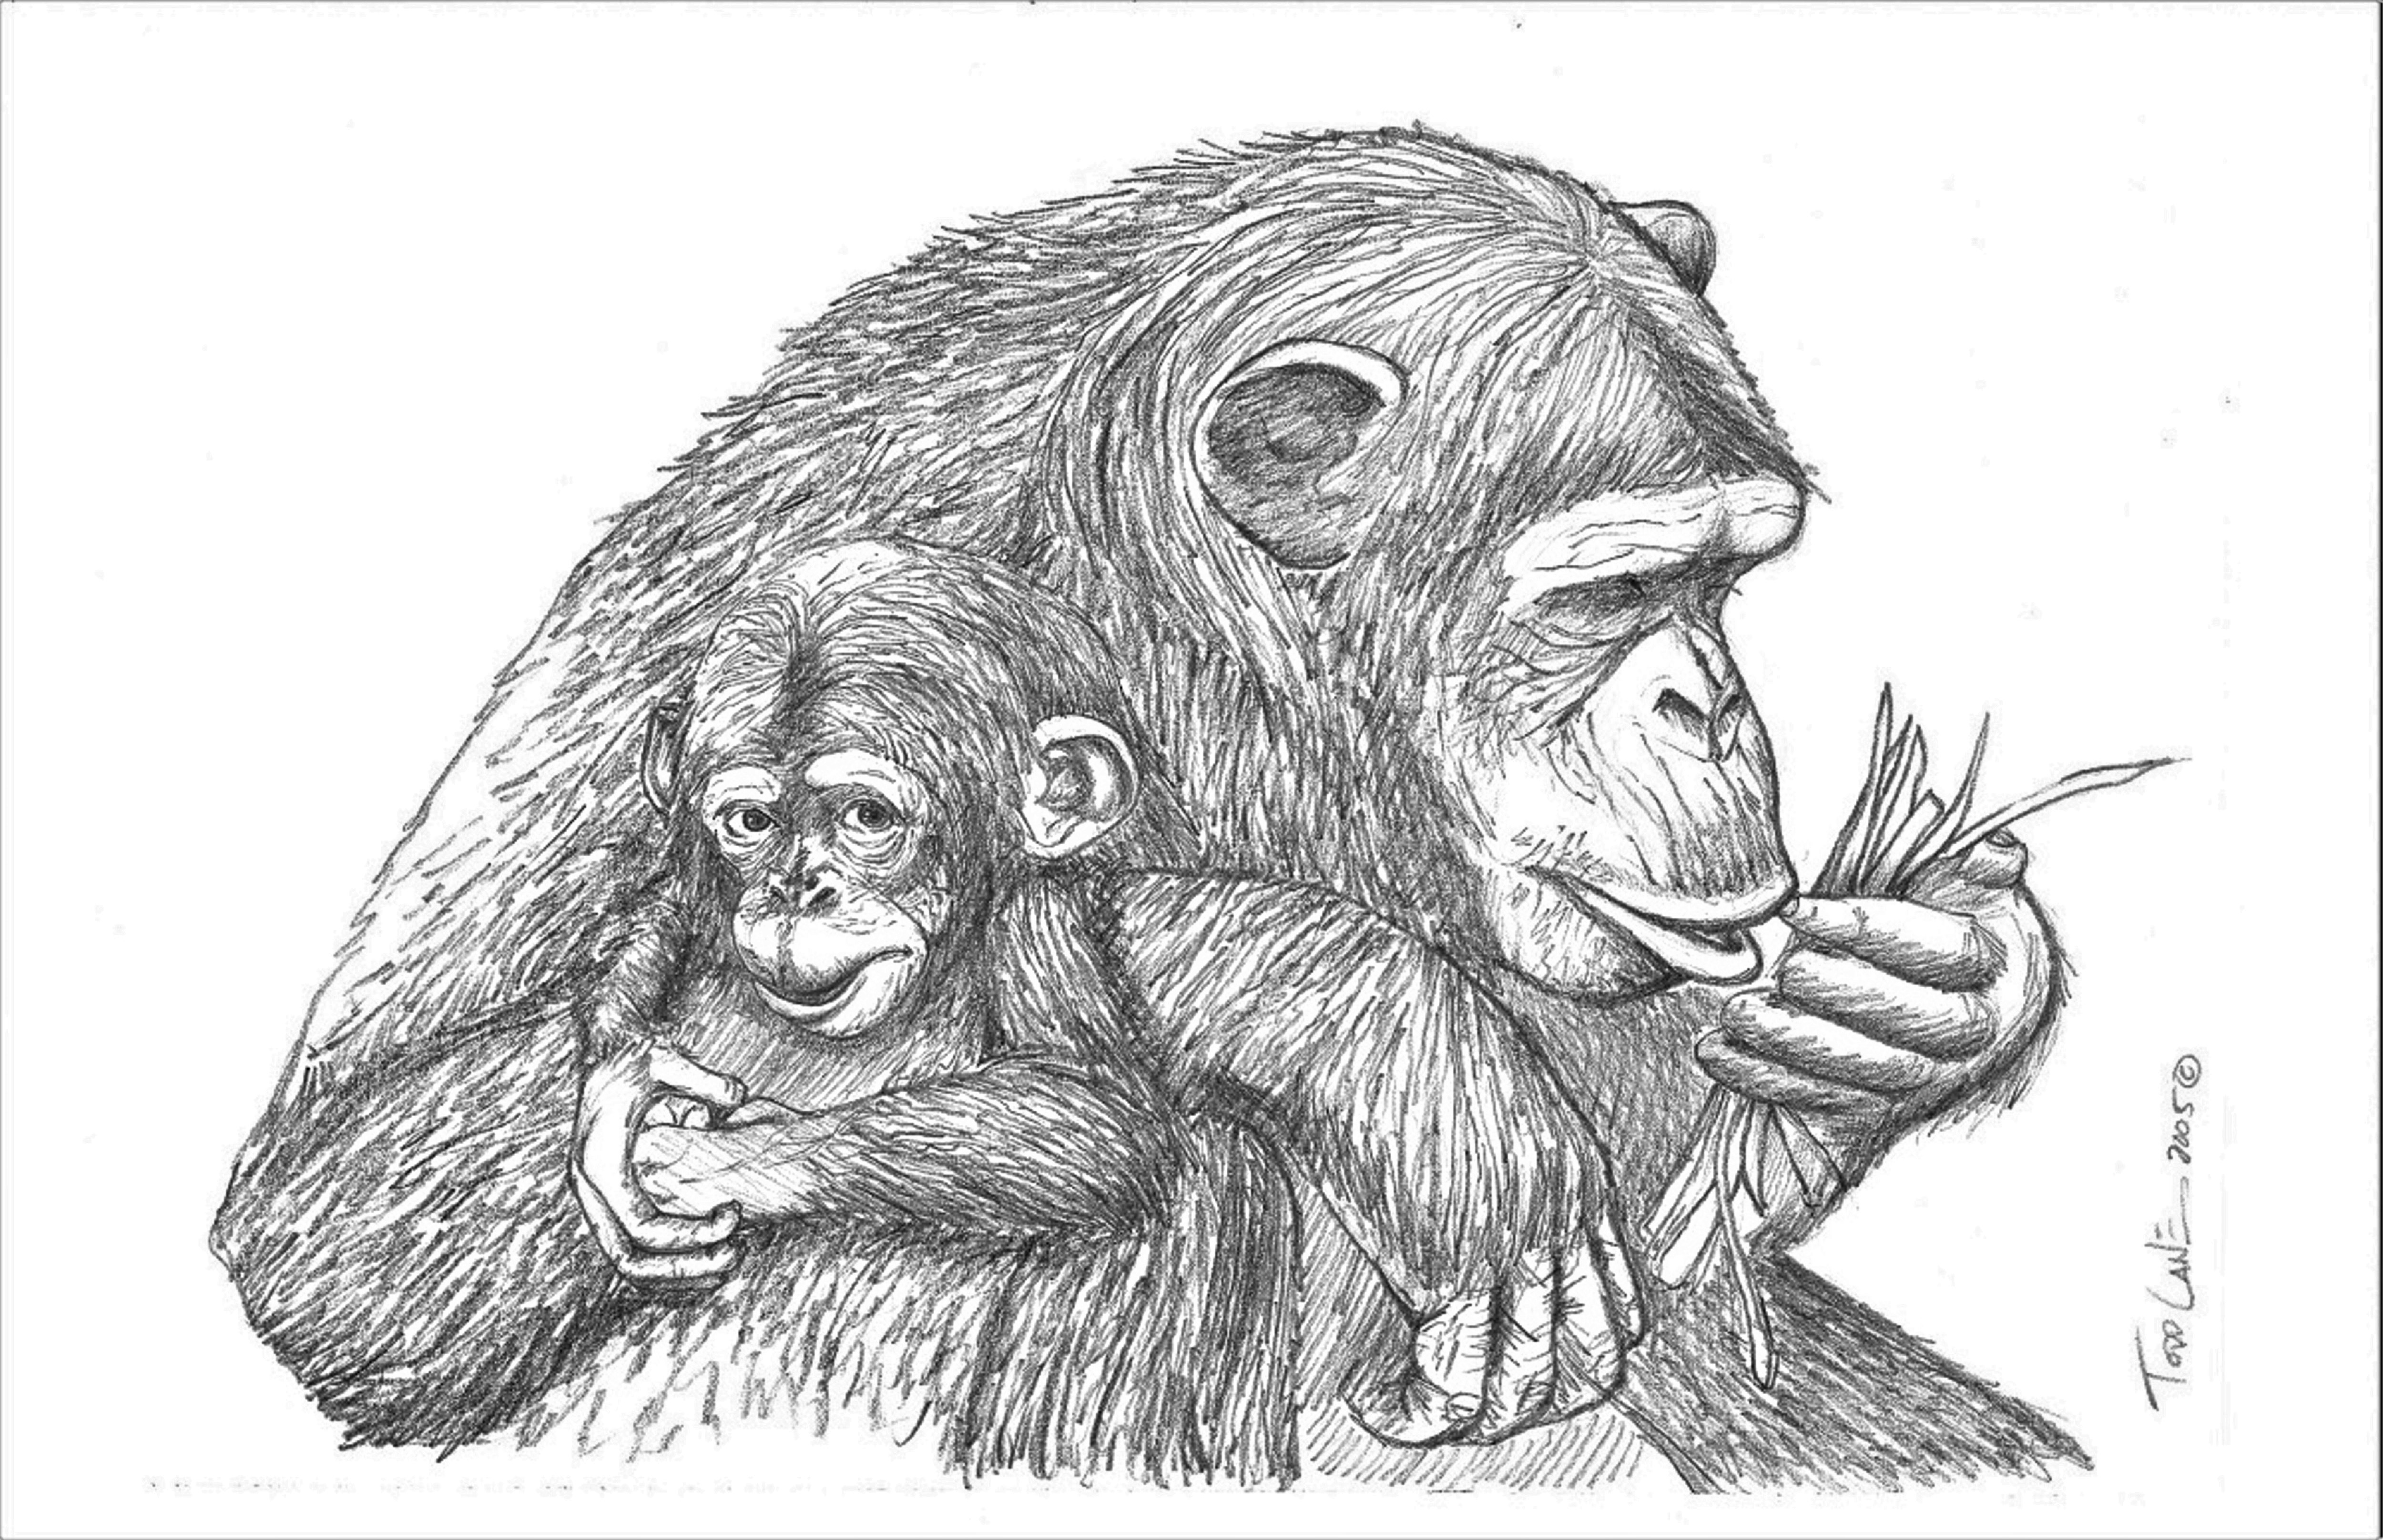 Mother and Baby Chimpanzees Kenya Series Image 1 artwork by Todd Lane - art listed for sale on Artplode